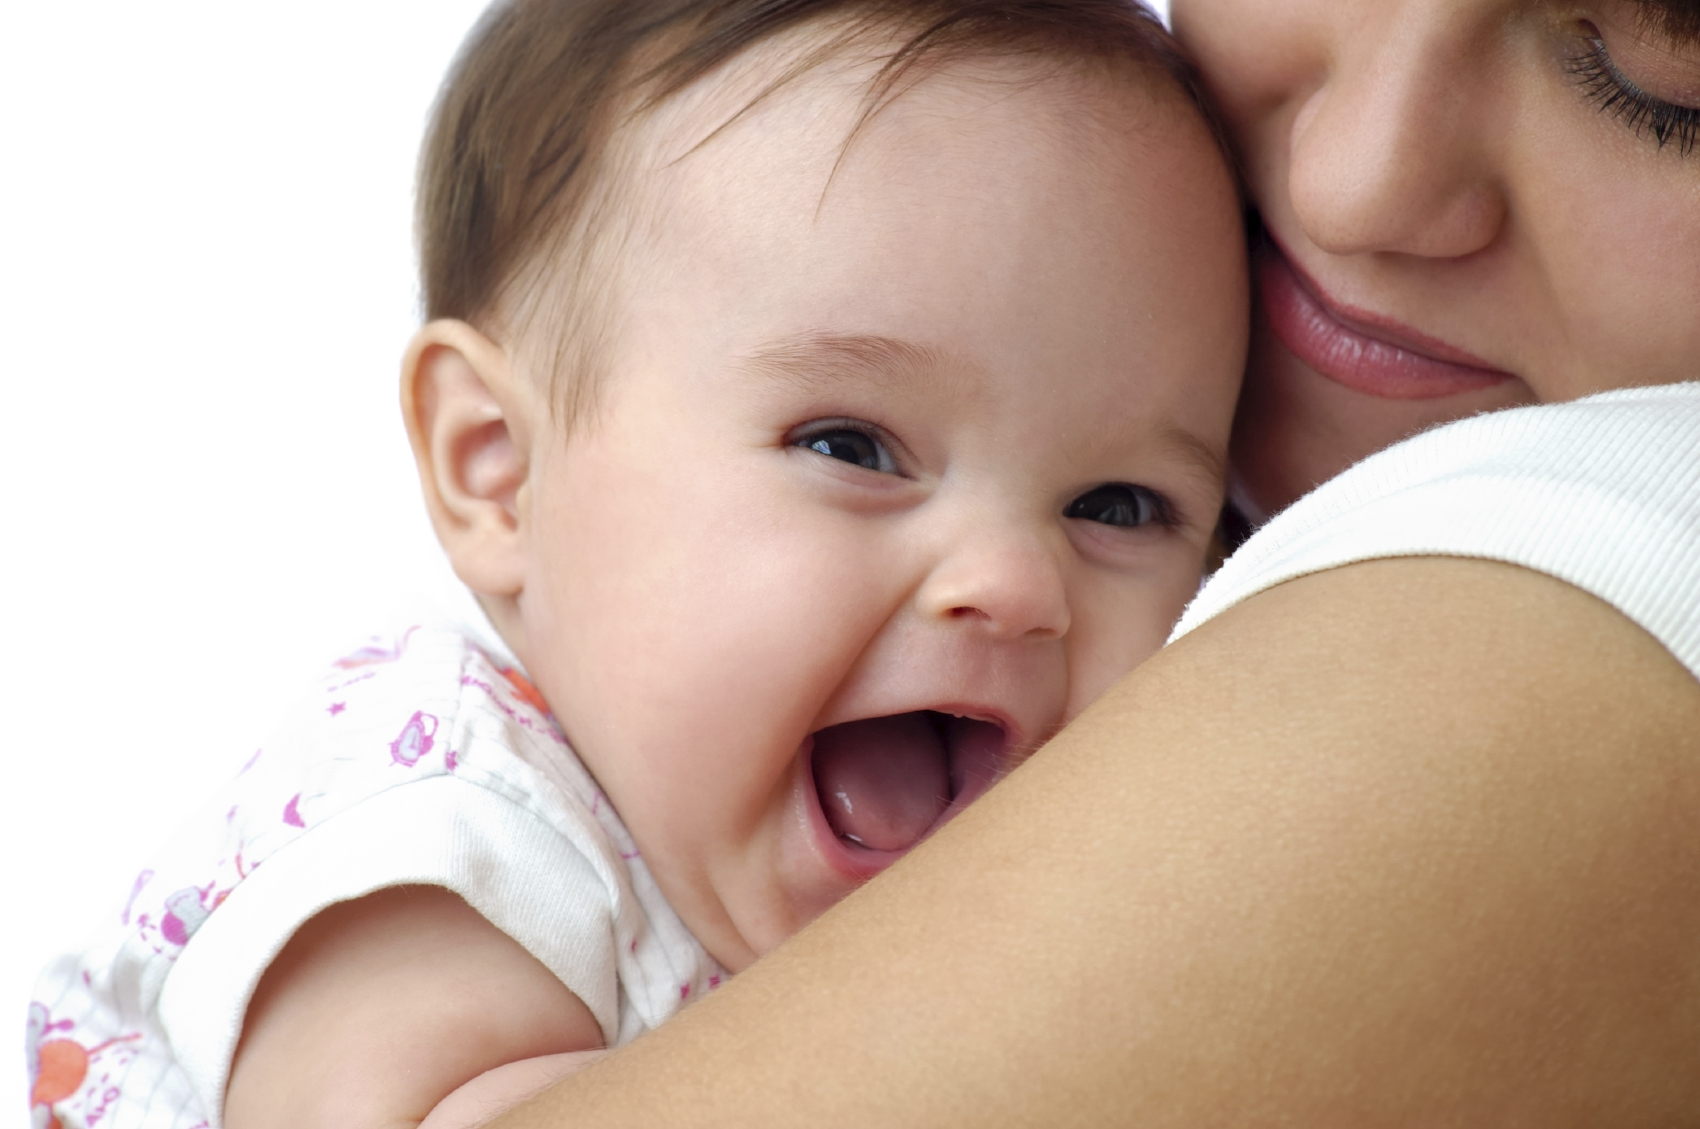 Four month old baby, series with mother  [url=http://www.istockphoto.com/file_search.php?action=file&lightboxID=2854722] [img]http://img47.imageshack.us/img47/4241/beautifulbabiesez7.jpg[/img][/url]